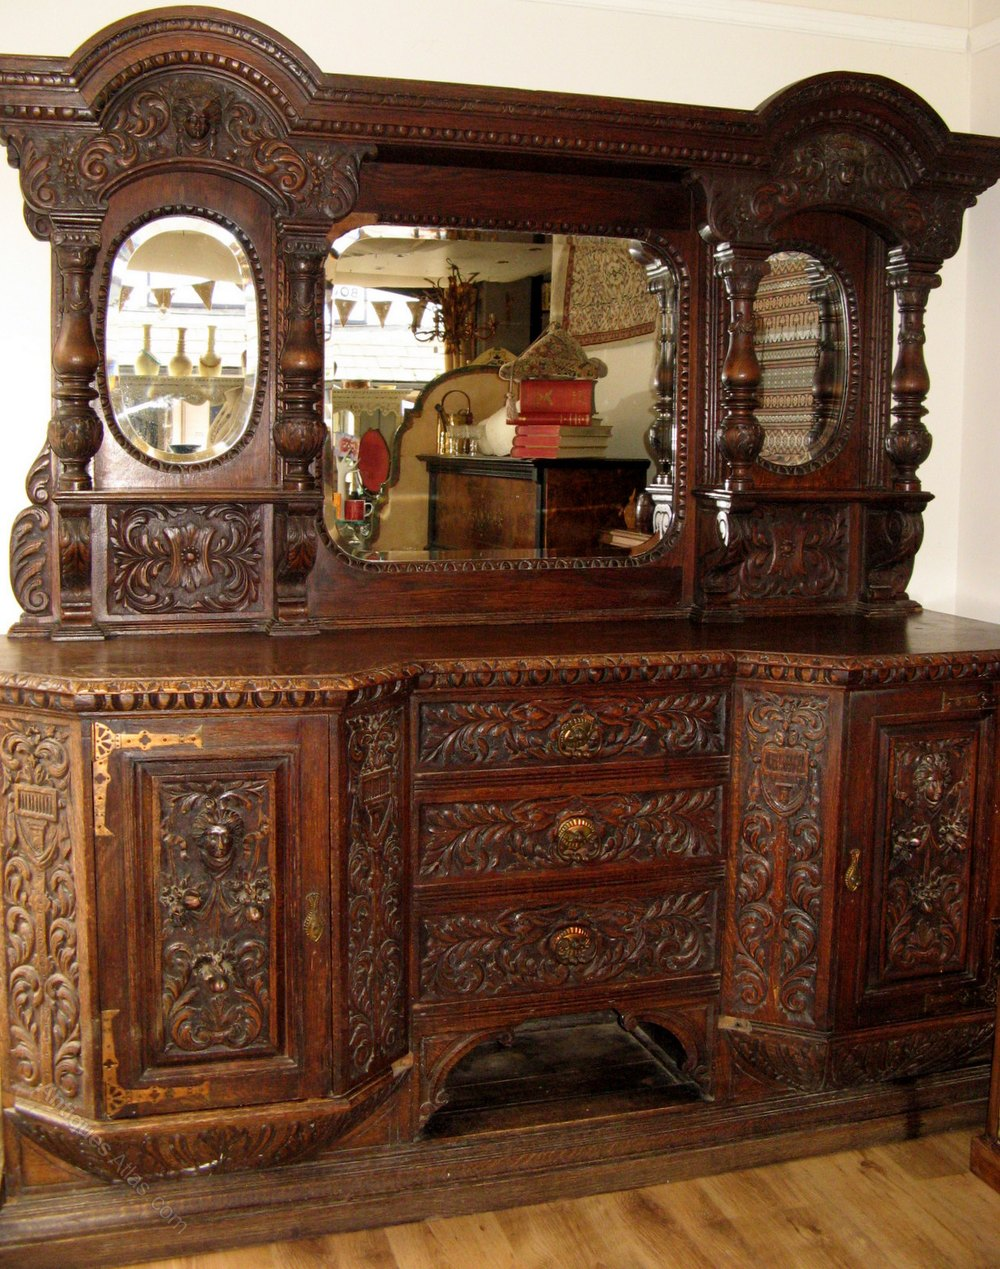 Magnificent Carved Sideboard Buffet Cabinet Antique Gothic Revival